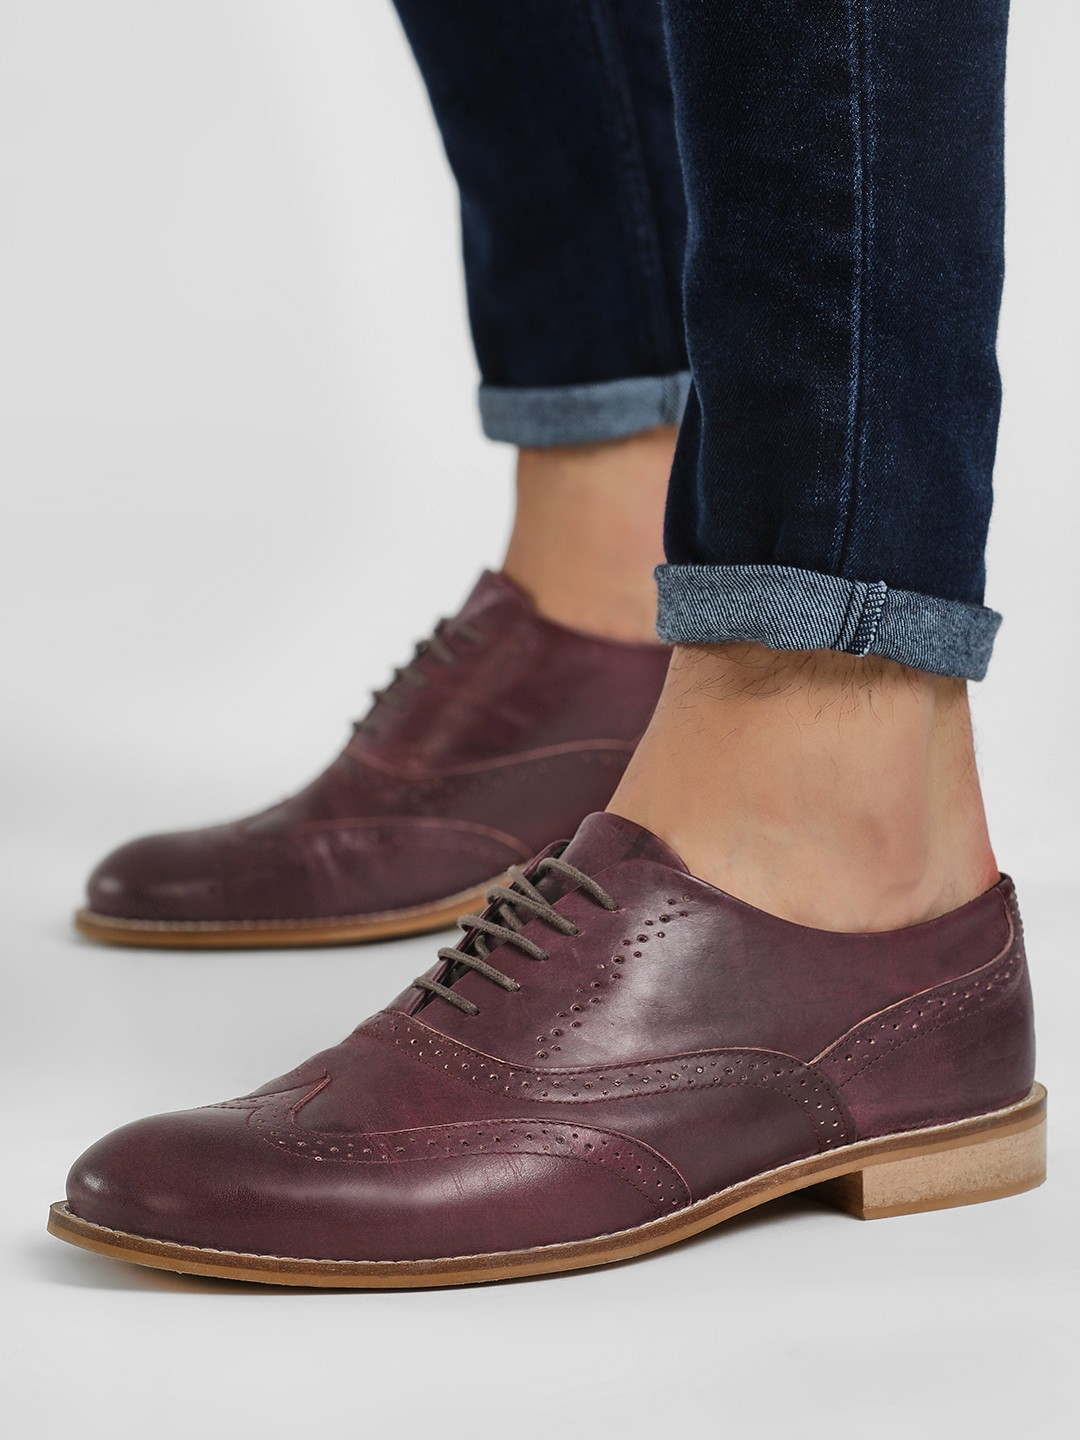 Marcello & Ferri Red Leather Brogue Derby Oxford Shoes 1